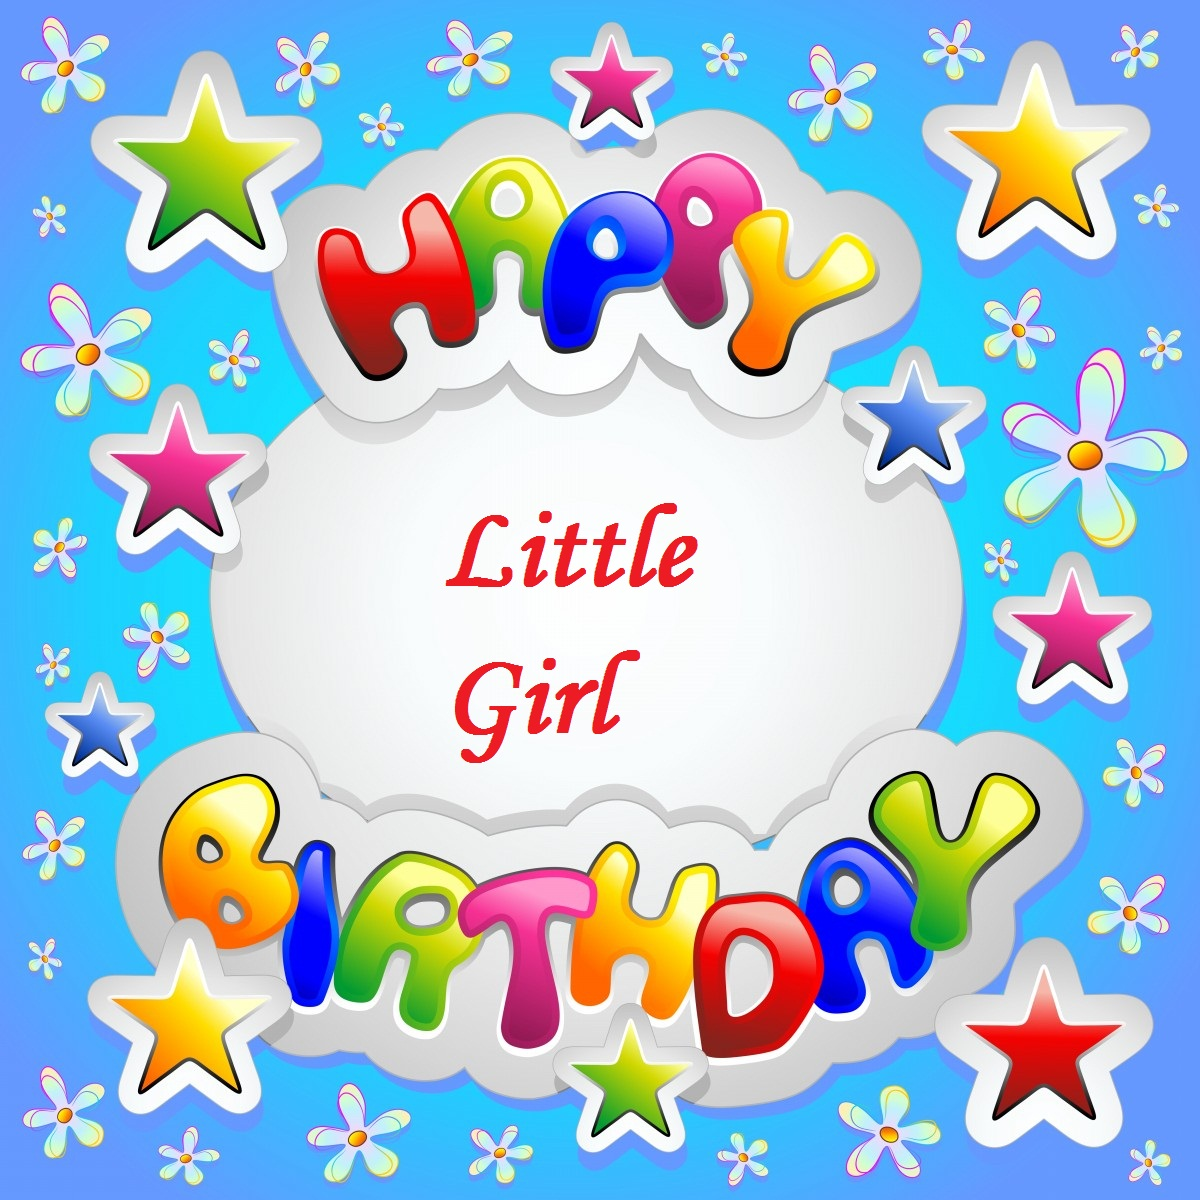 Lovely Greetings Birthday Wishes For Little Girl